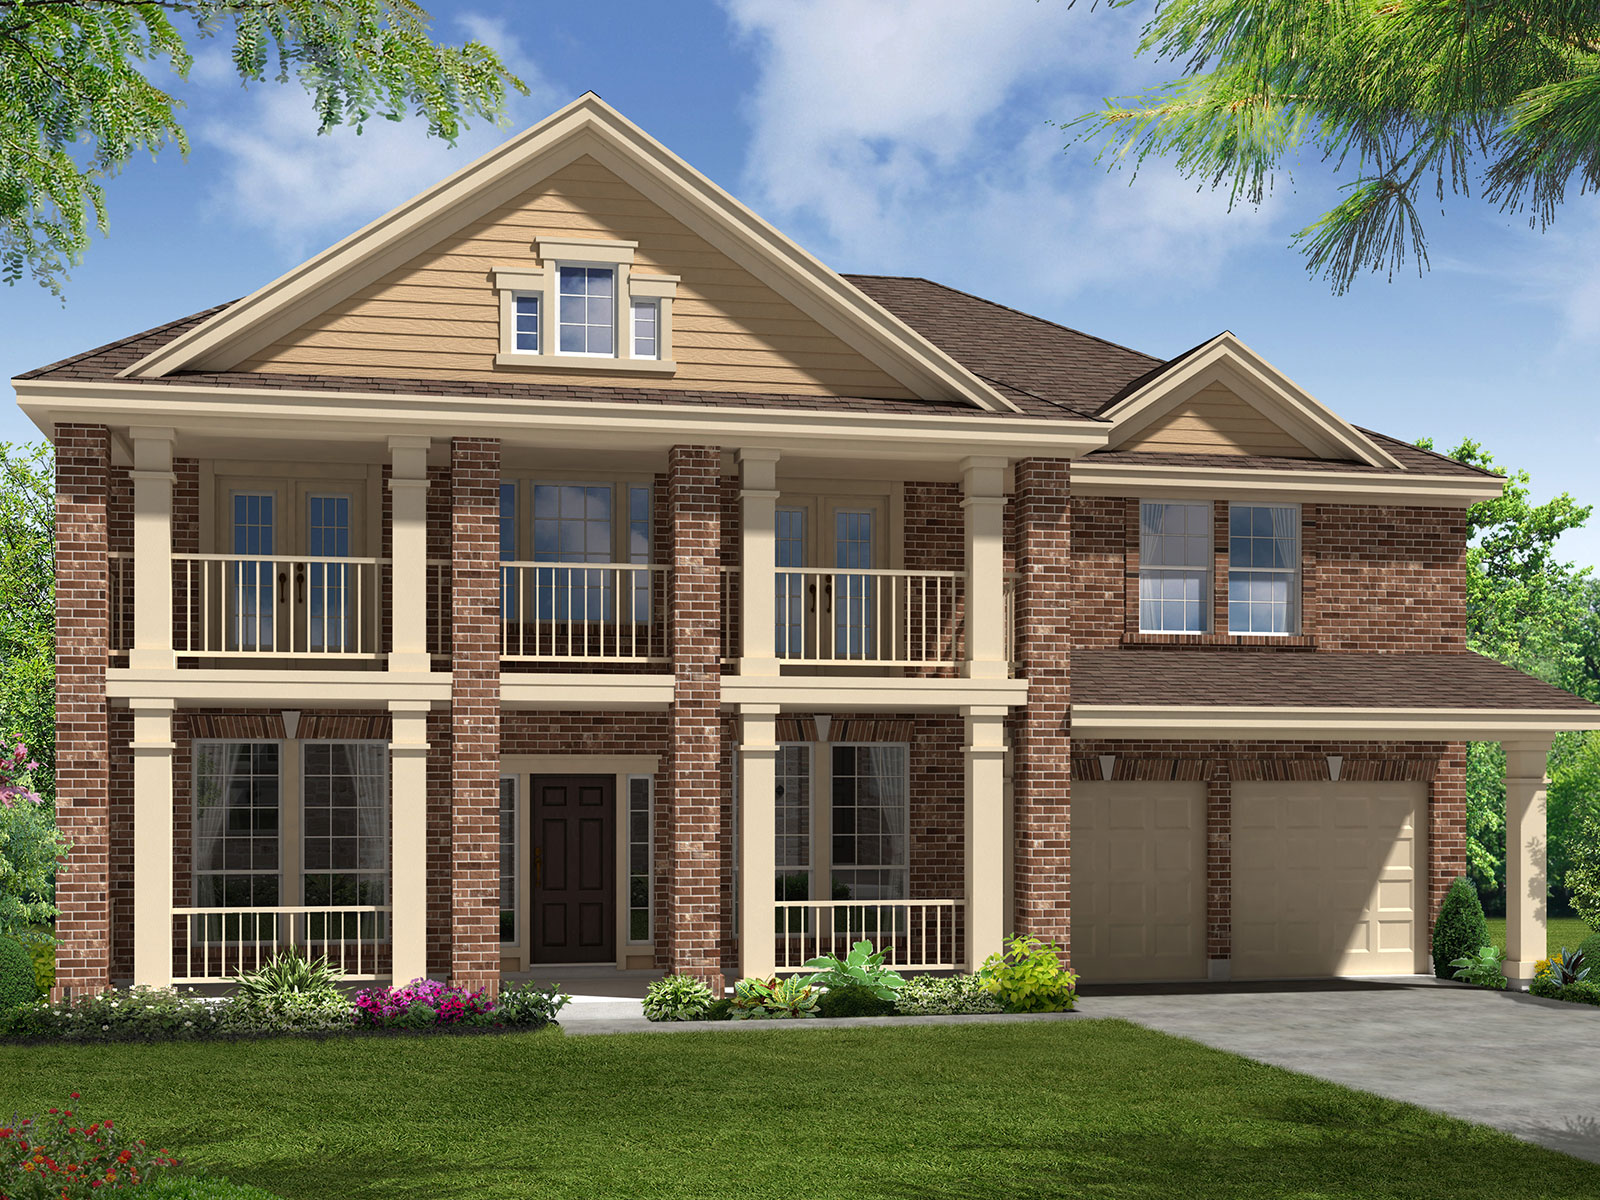 The austin 5844 model 5br 4ba homes for sale in for Home elevation houston